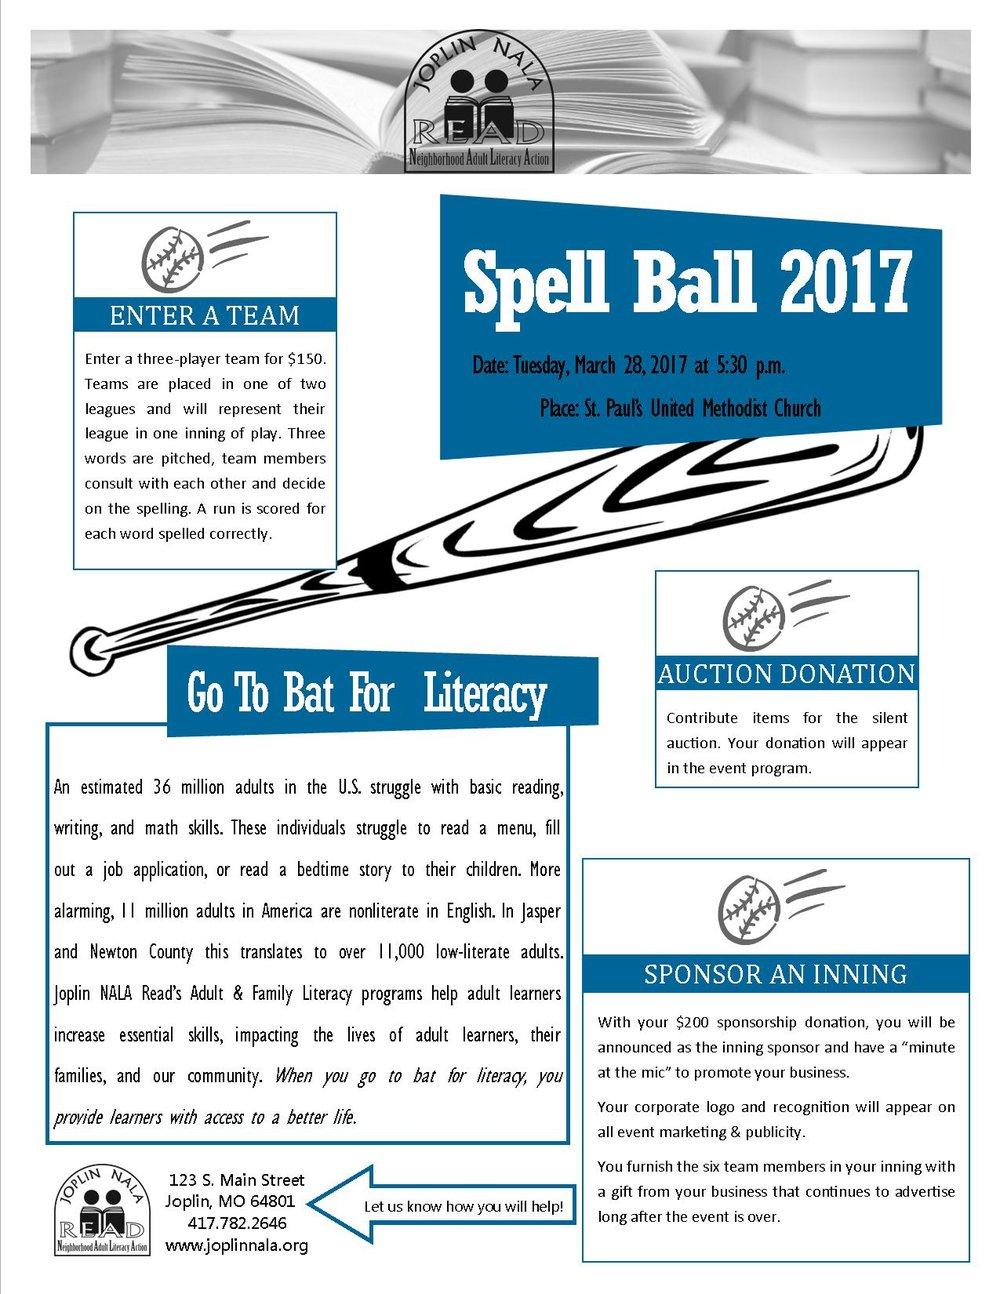 MSP - Spell Ball 2016.jpg